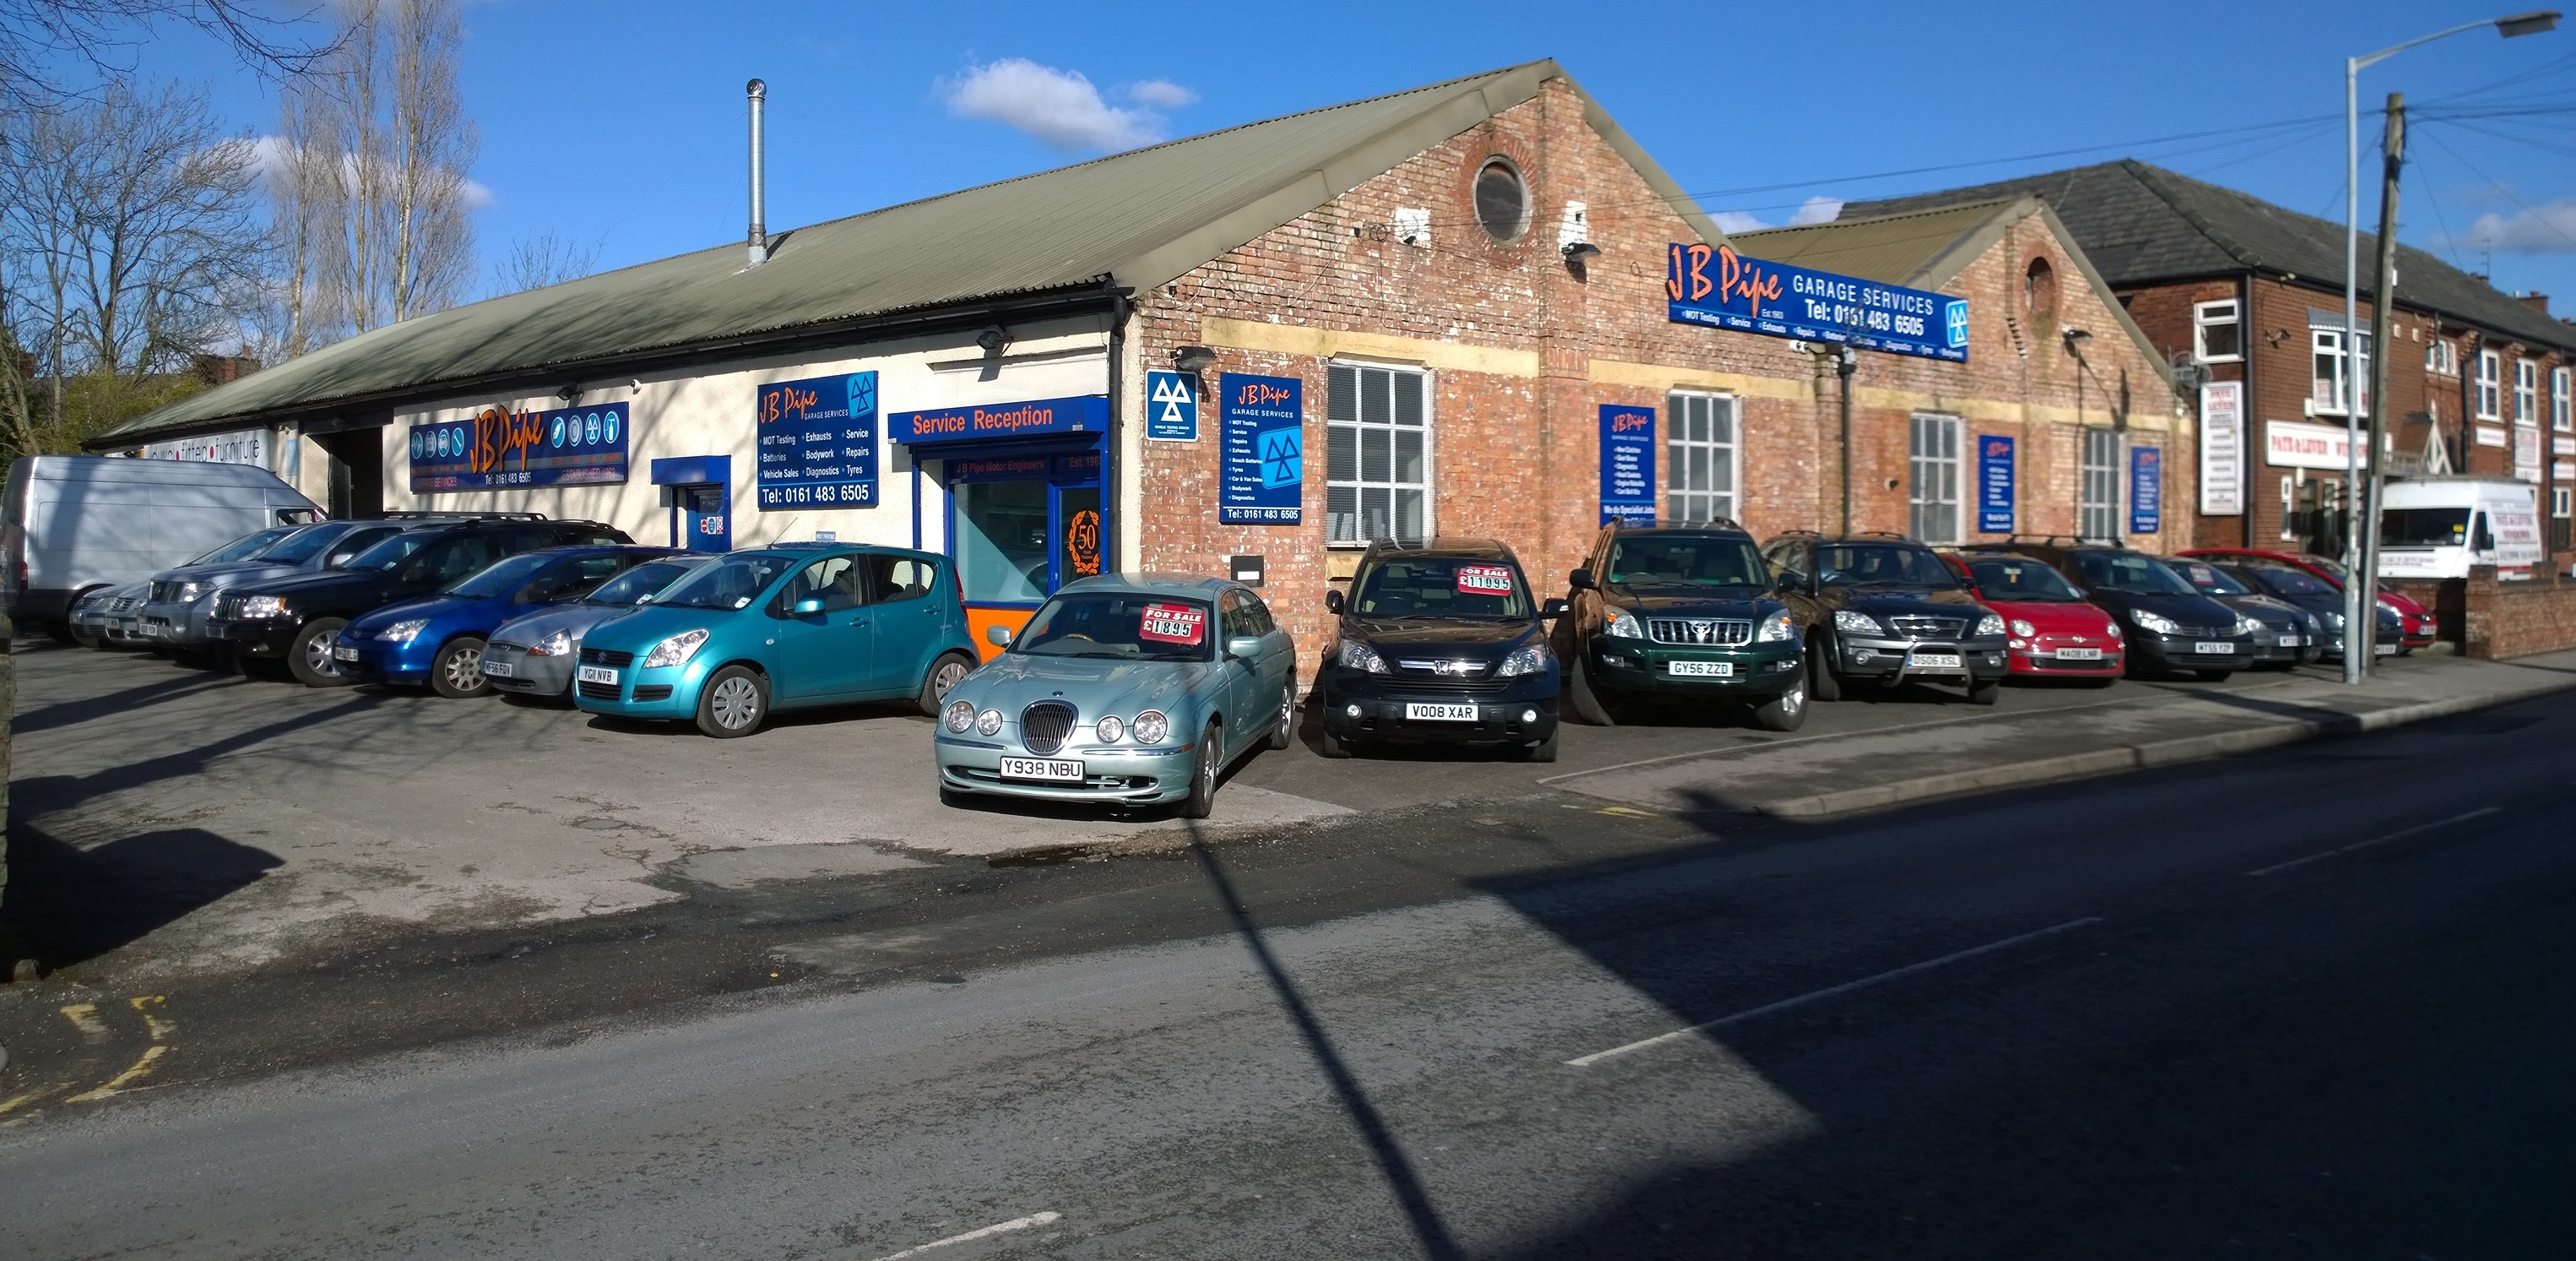 Used car sales rooms in llandudno